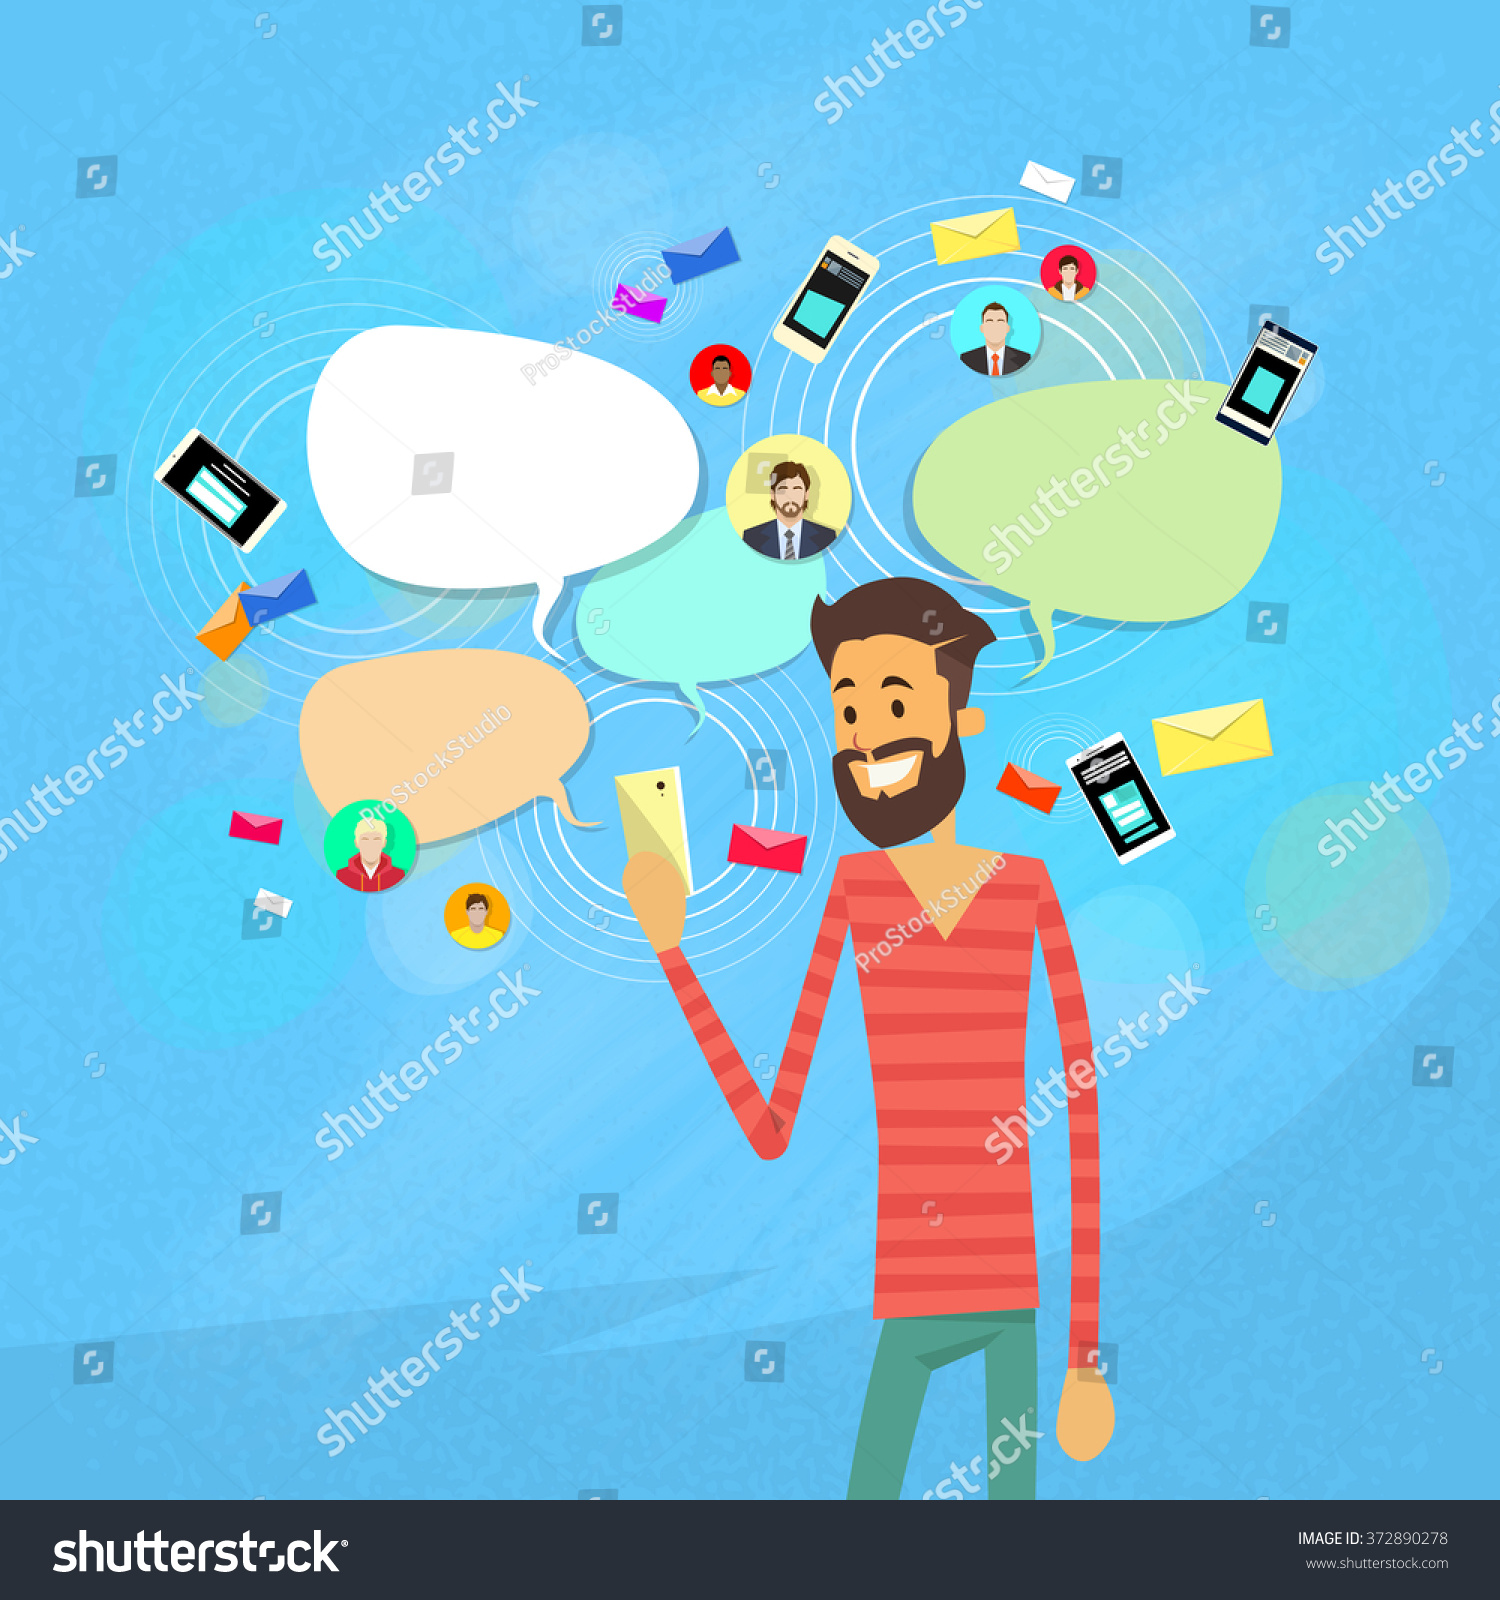 Man Chatting Texting Social Network Communication Flat Vector Illustration